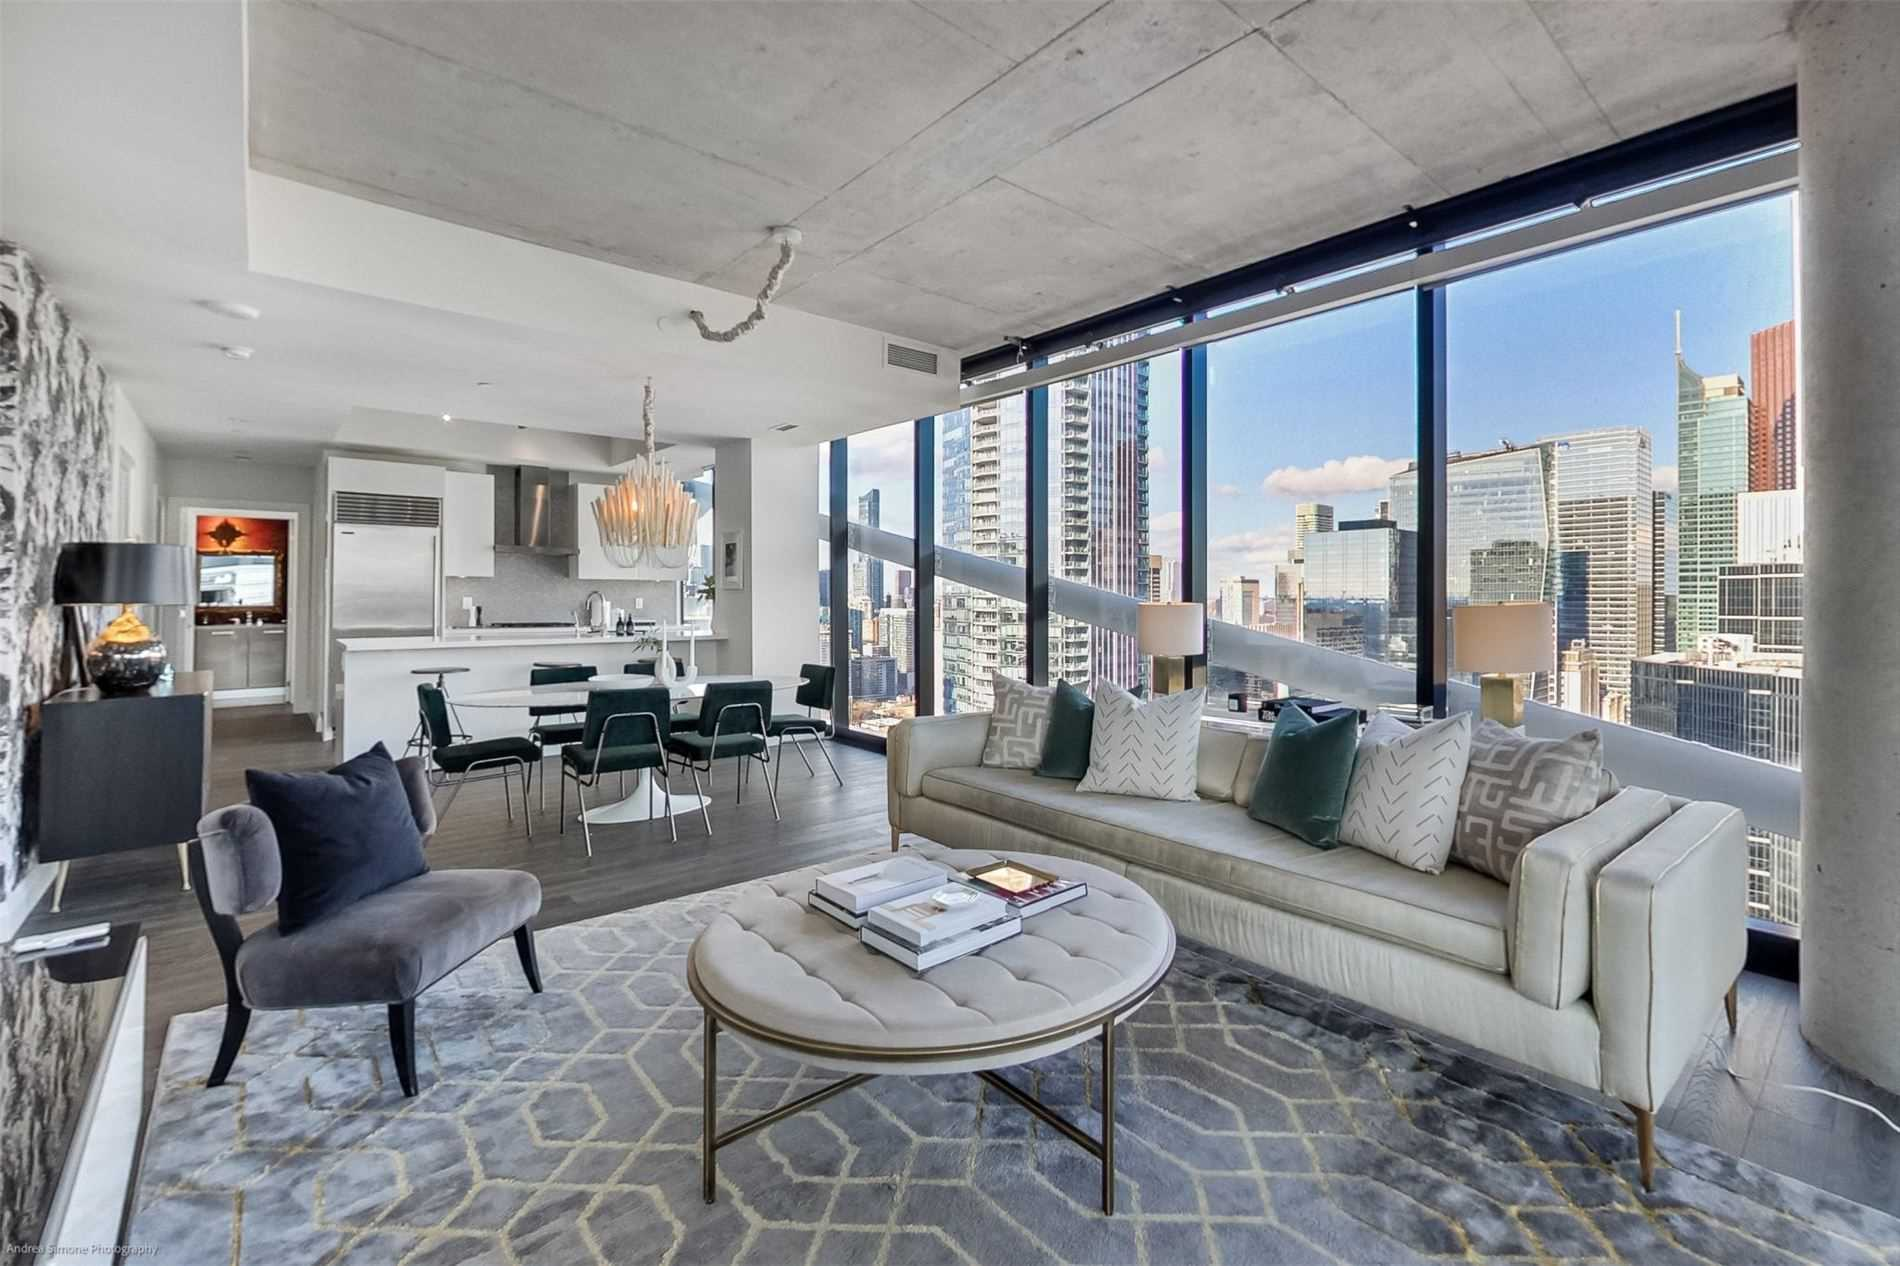 3603 - 224 King St W, Toronto | For Sale @ $1,825,000 ...